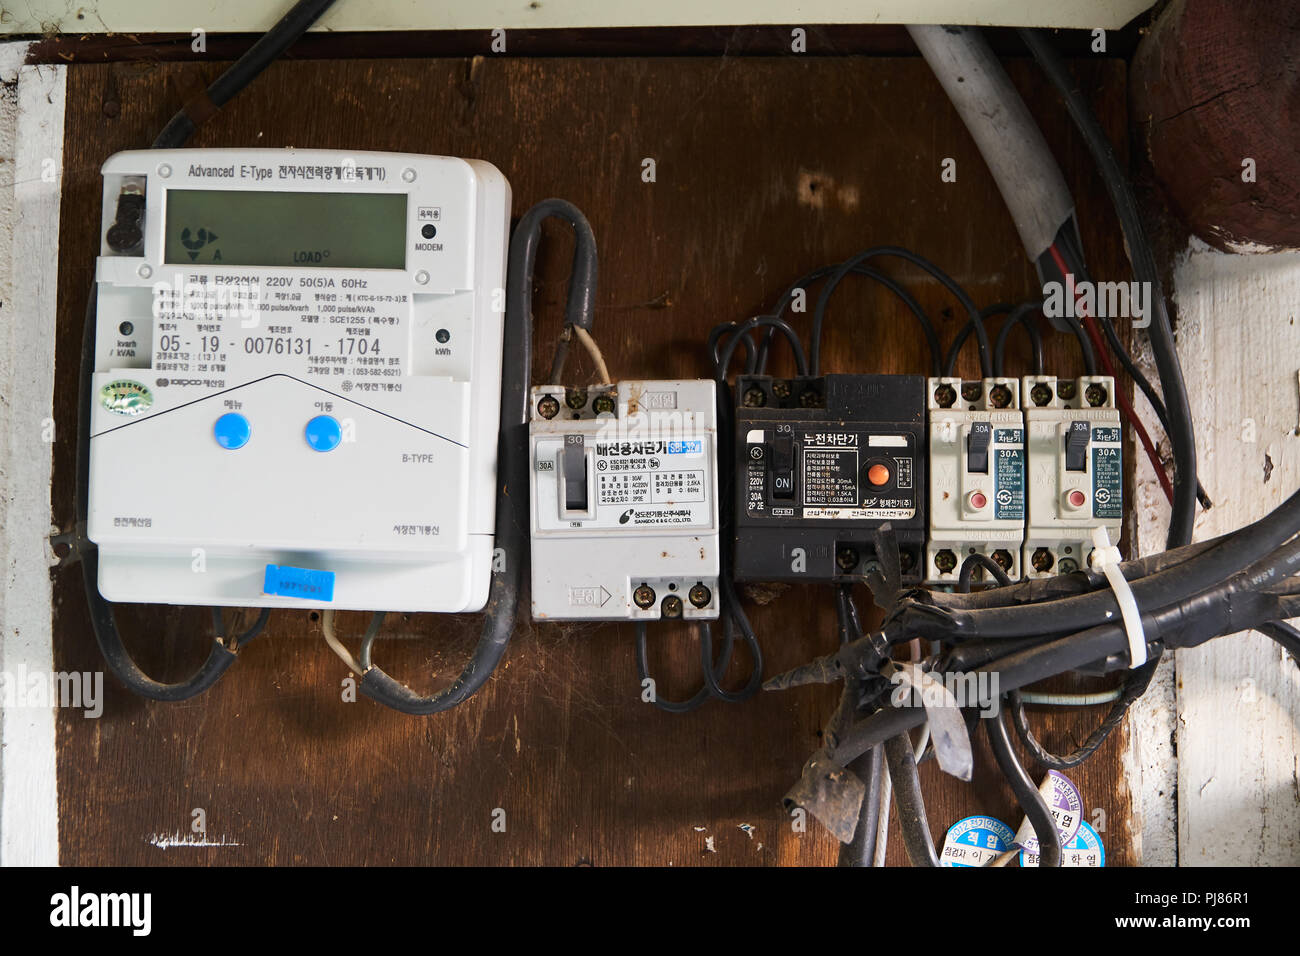 inje gun korea may 10 2018 old wires circuit breaker and digital smart electricity meters installed on a wooden board of old house in korea PJ86R1 inje gun, korea may 10, 2018 old wires, circuit breaker and